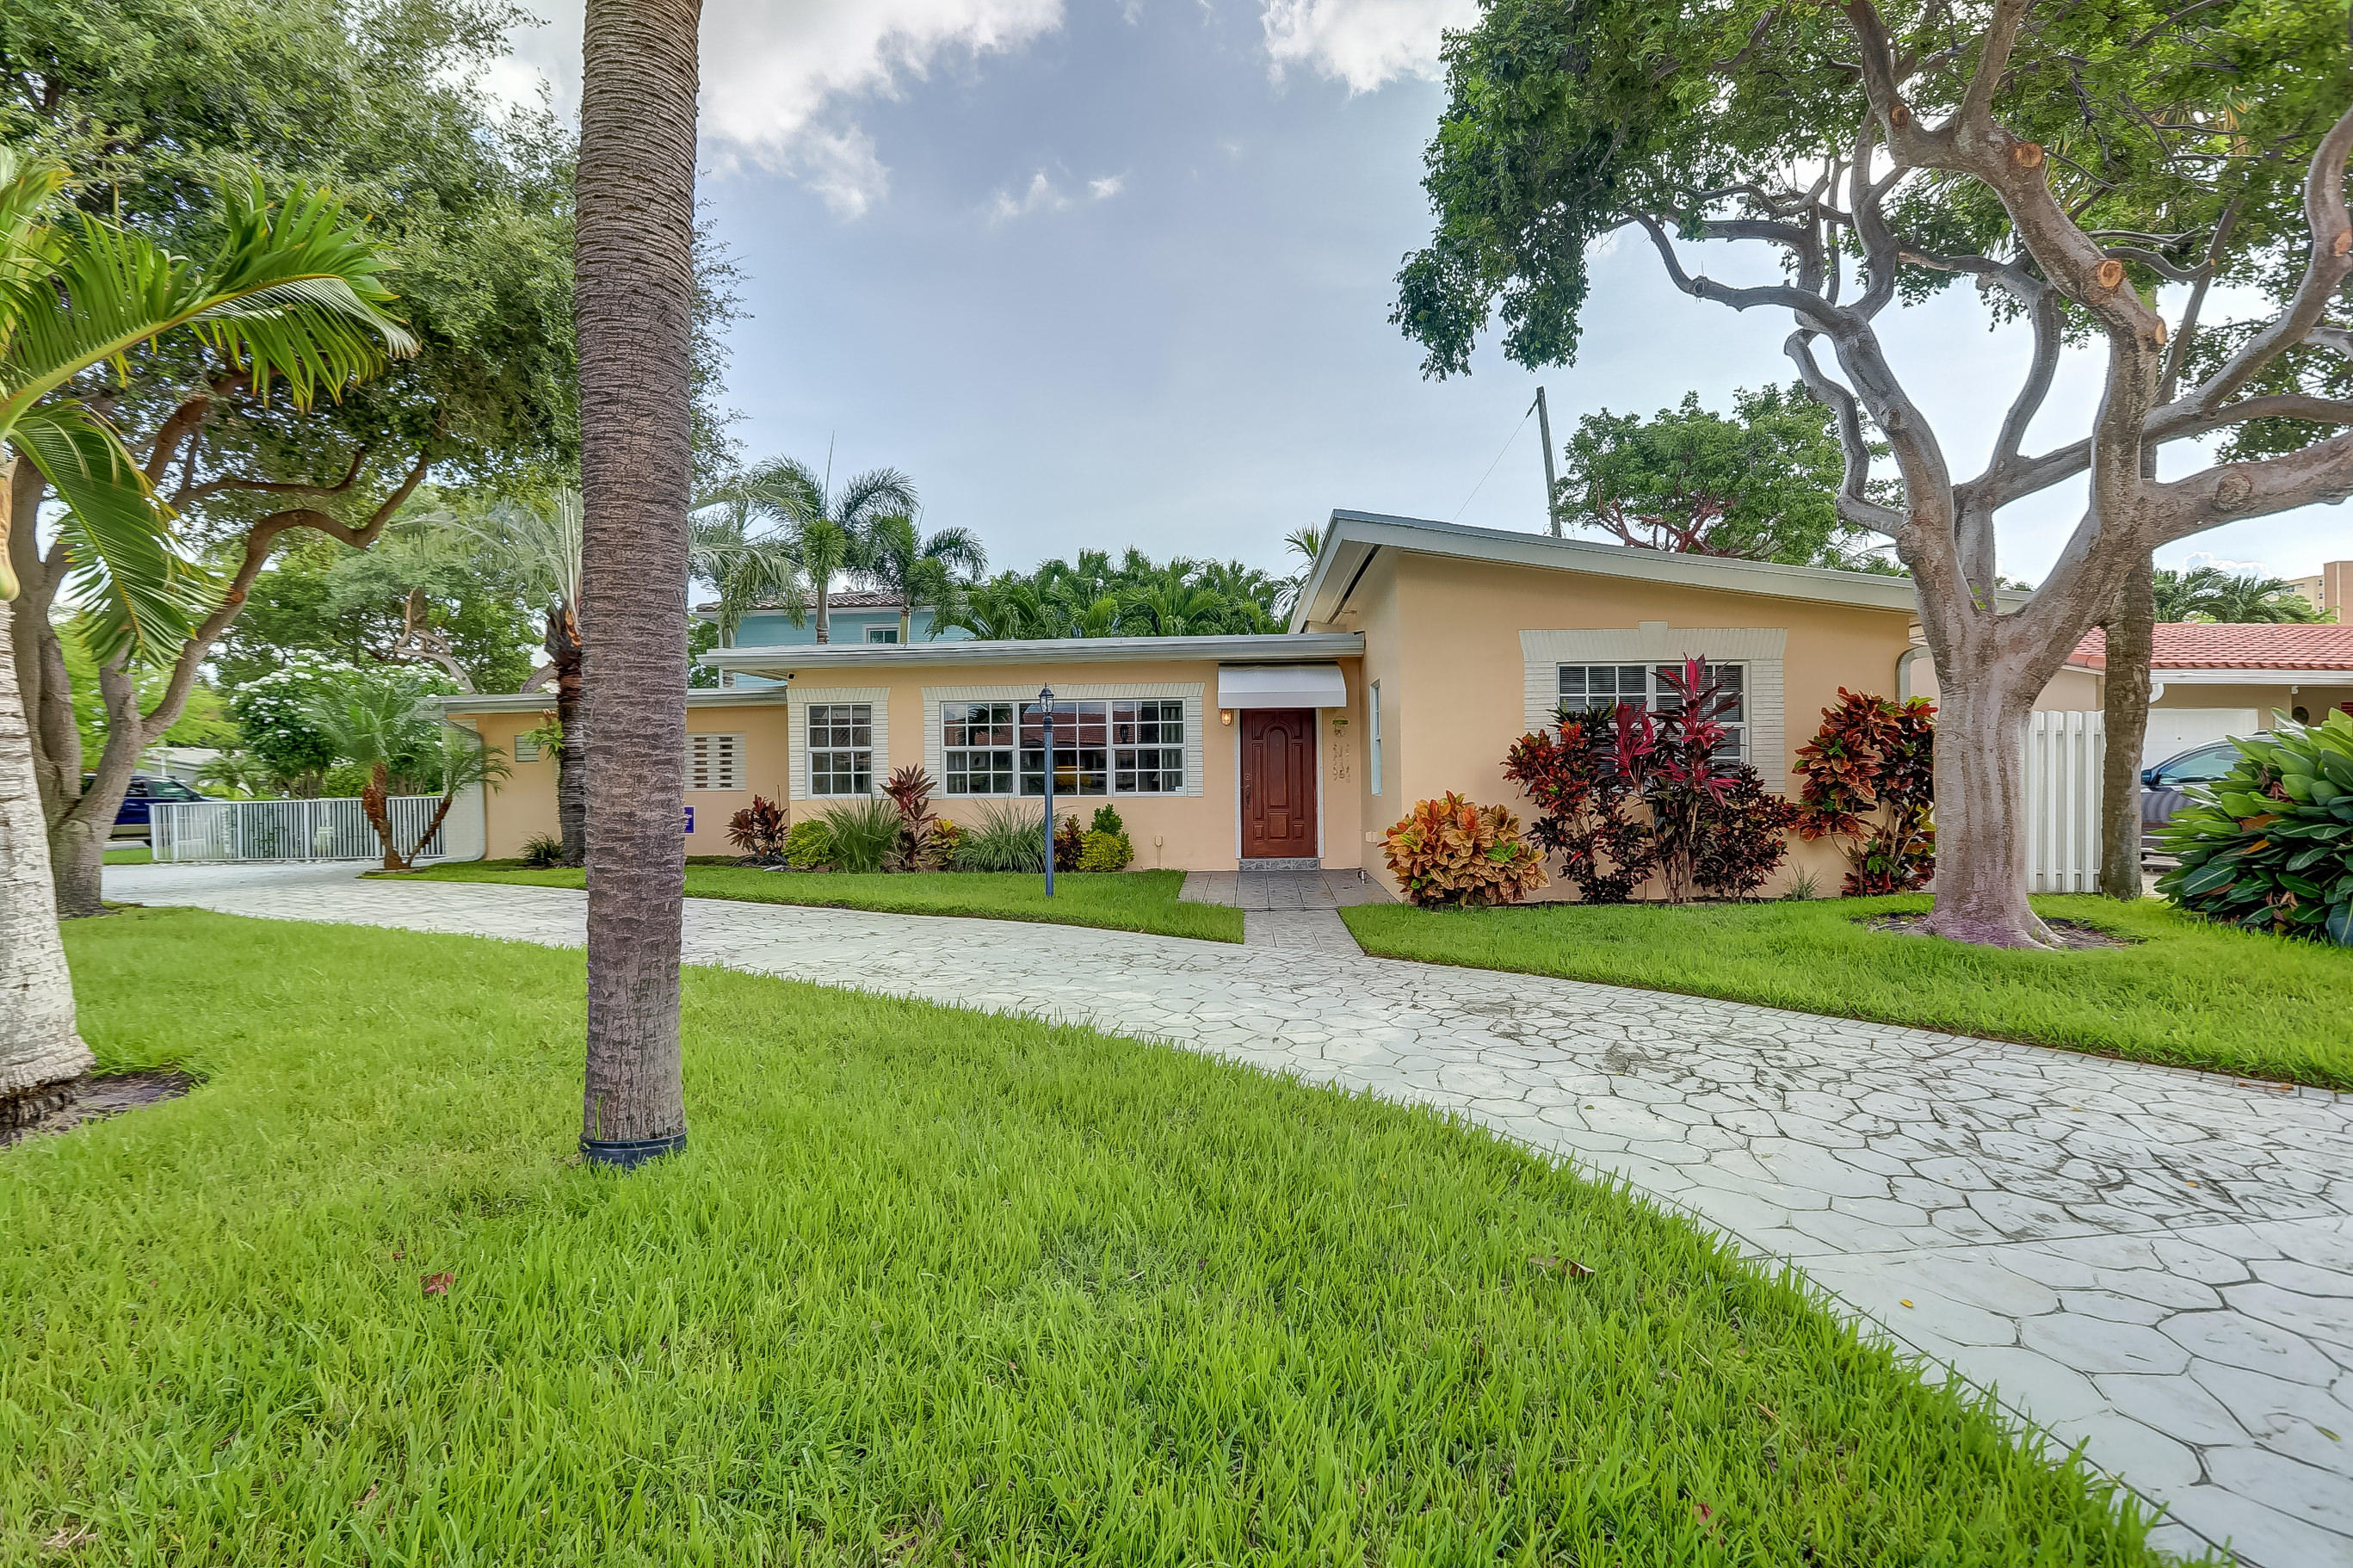 Details for 1902 Riverside Drive N, Pompano Beach, FL 33062